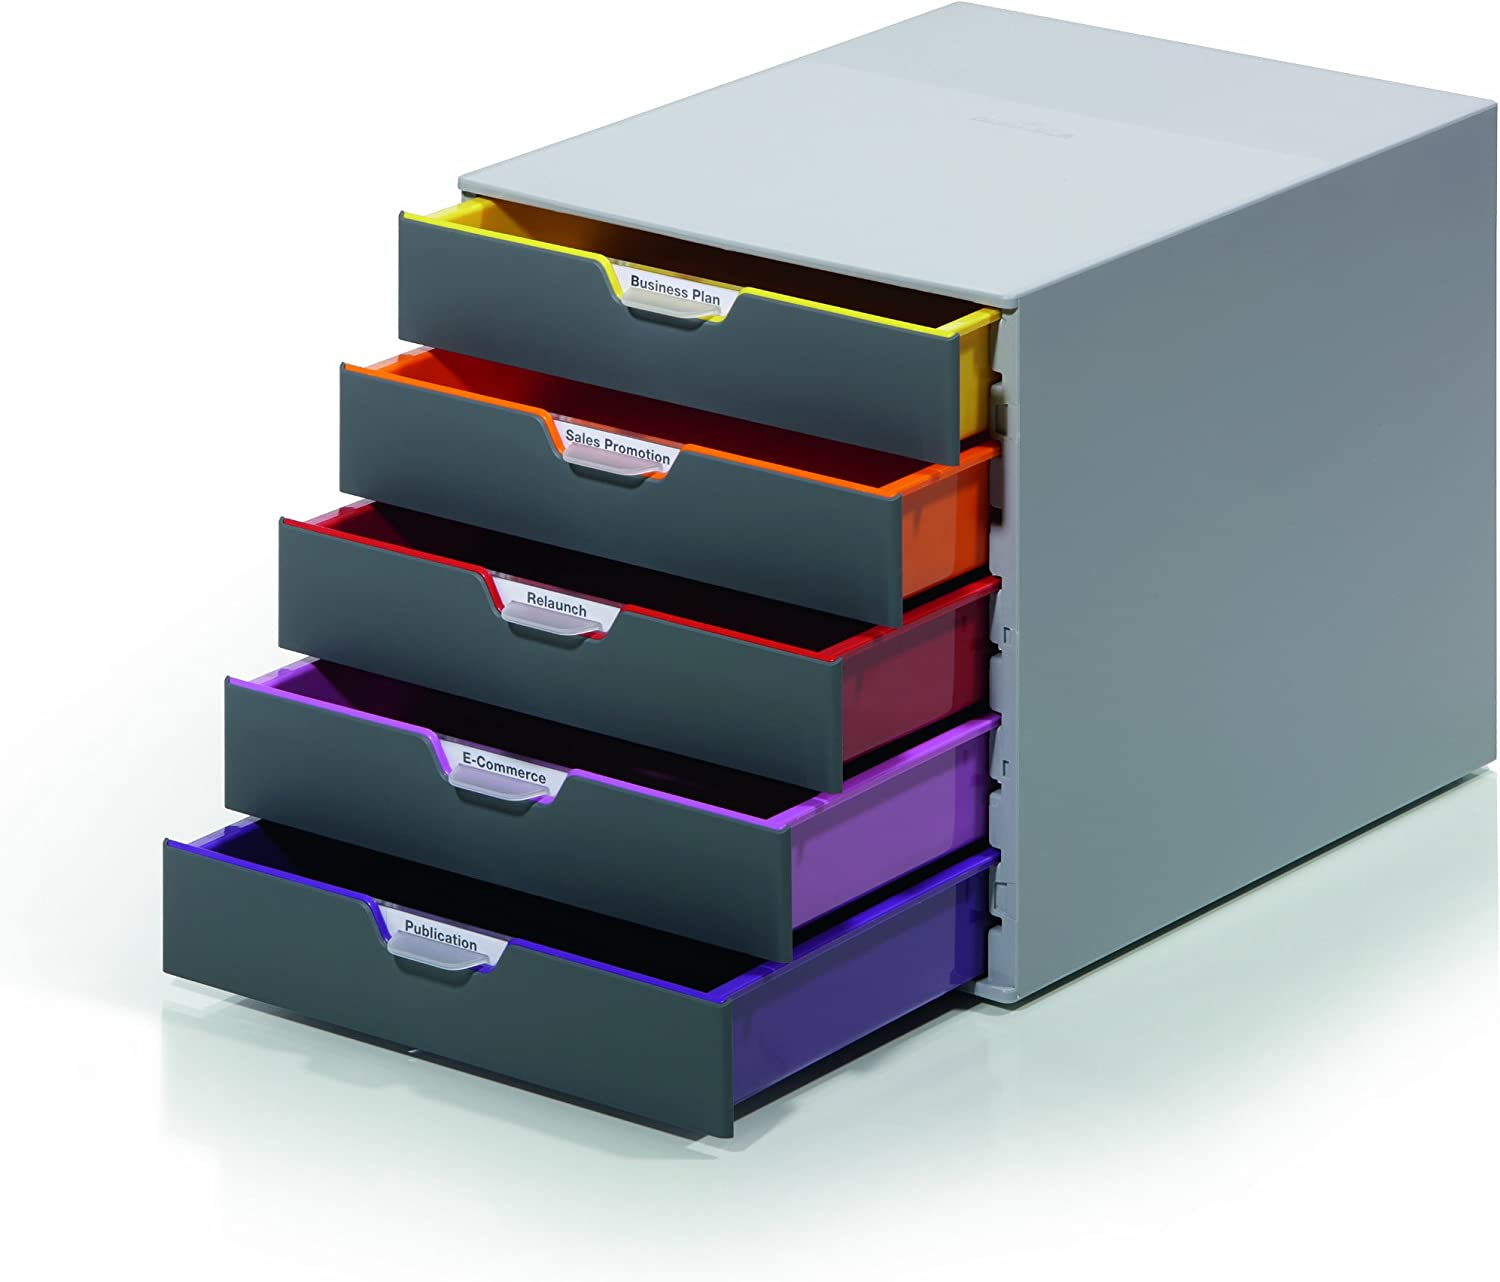 "DURABLE Desktop Drawer Organizer (VARICOLOR 5 Compartments with Removable Labels) 11"" w x 14"" d x 11.375"" h, Gray & Multicolored (760527)"